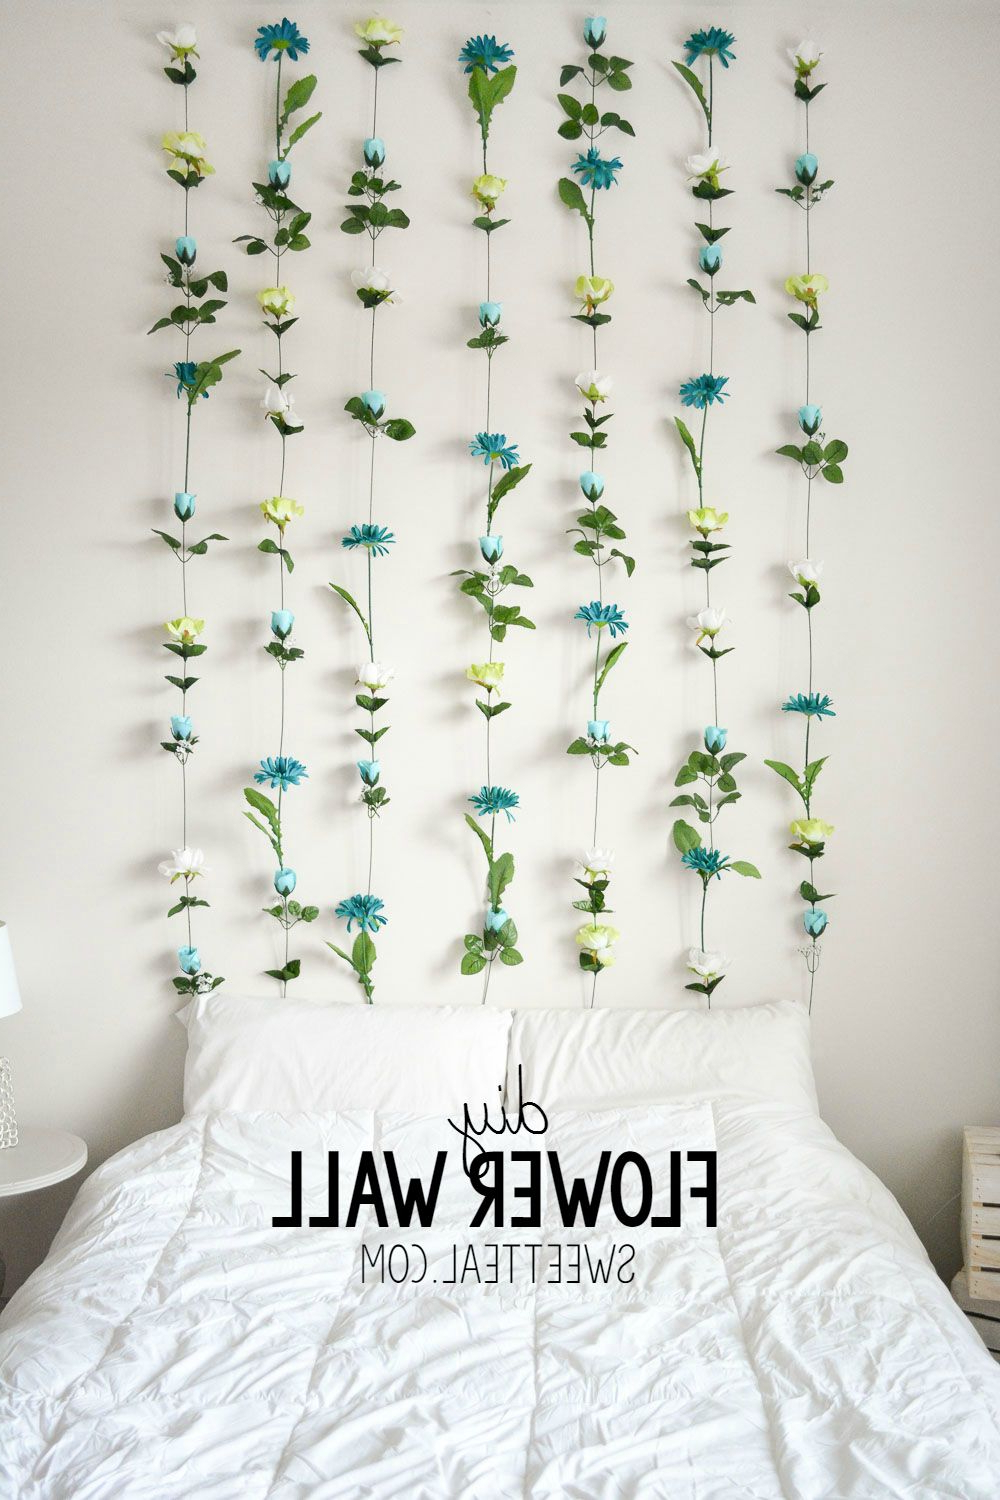 Diy Bedroom Decor For Teens, Home Decor (View 6 of 20)